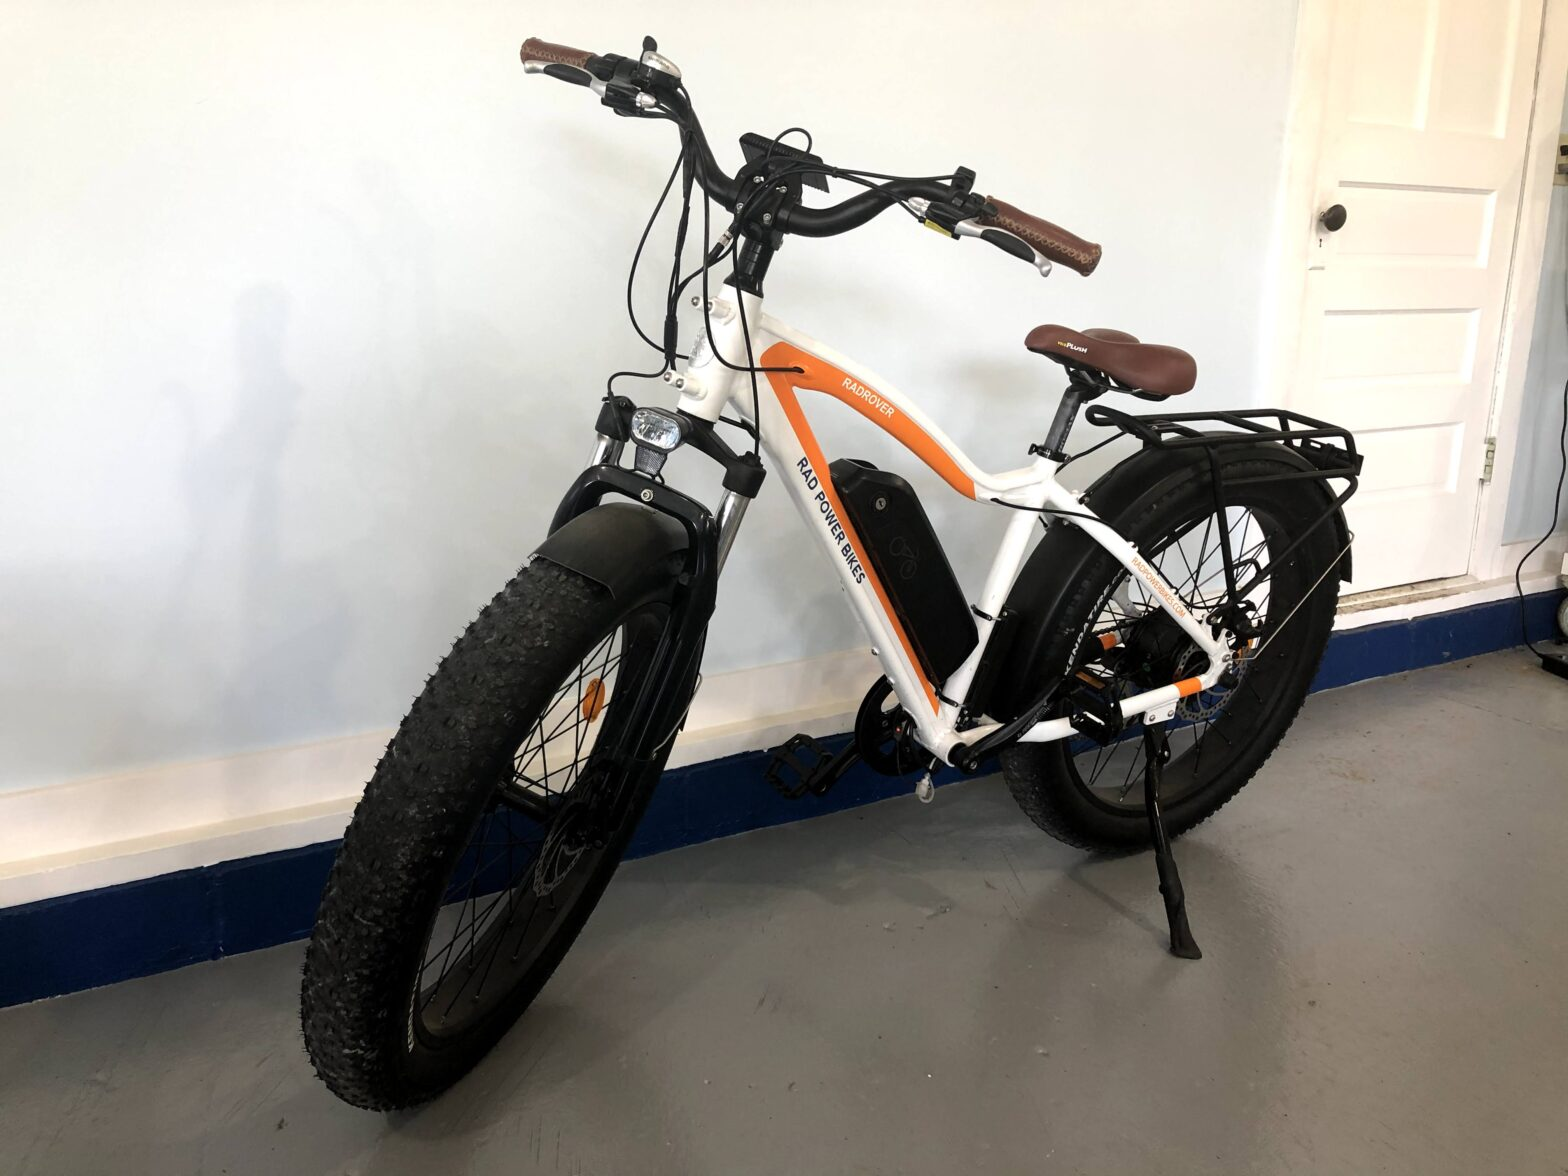 2018 Used RadRover E-Bike - Rad Power Bikes